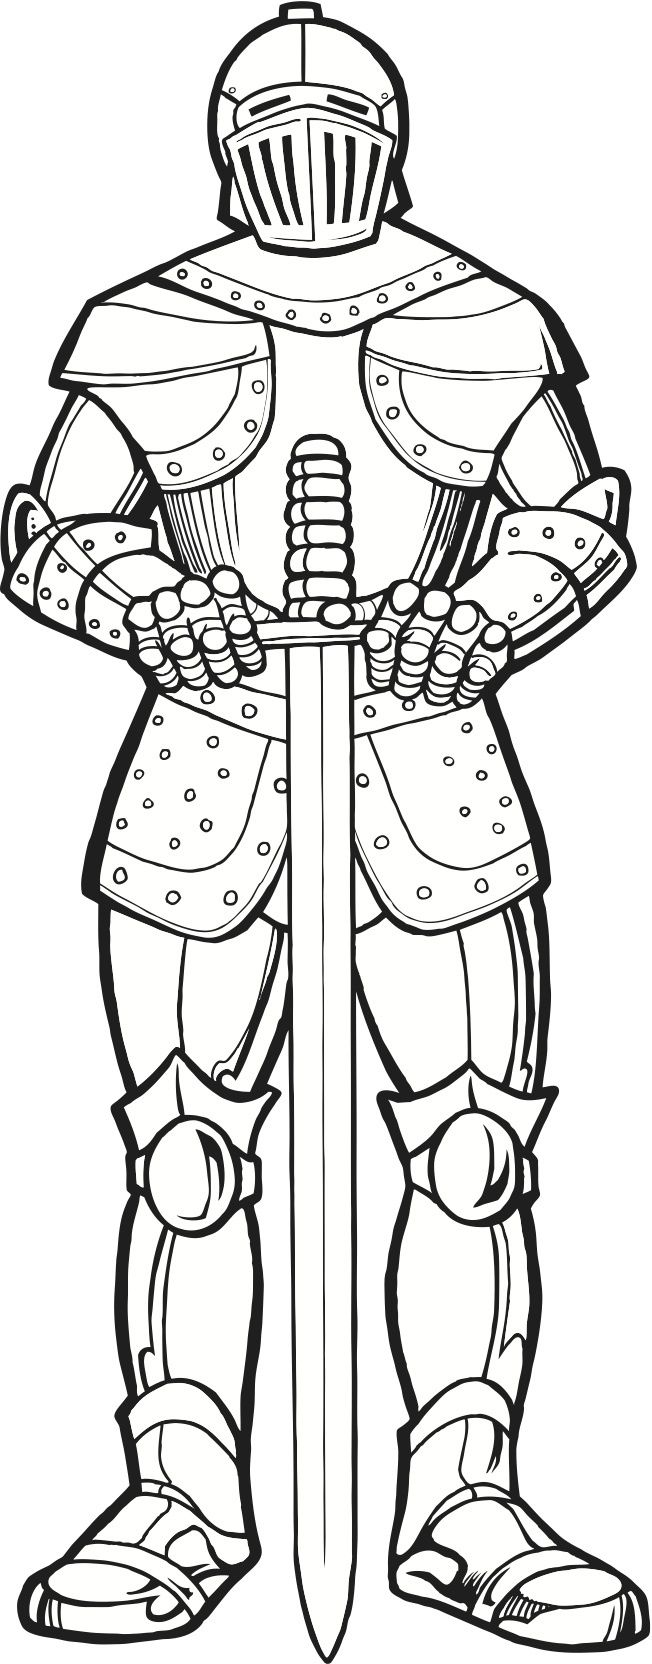 knight coloring pages for kids - photo#22